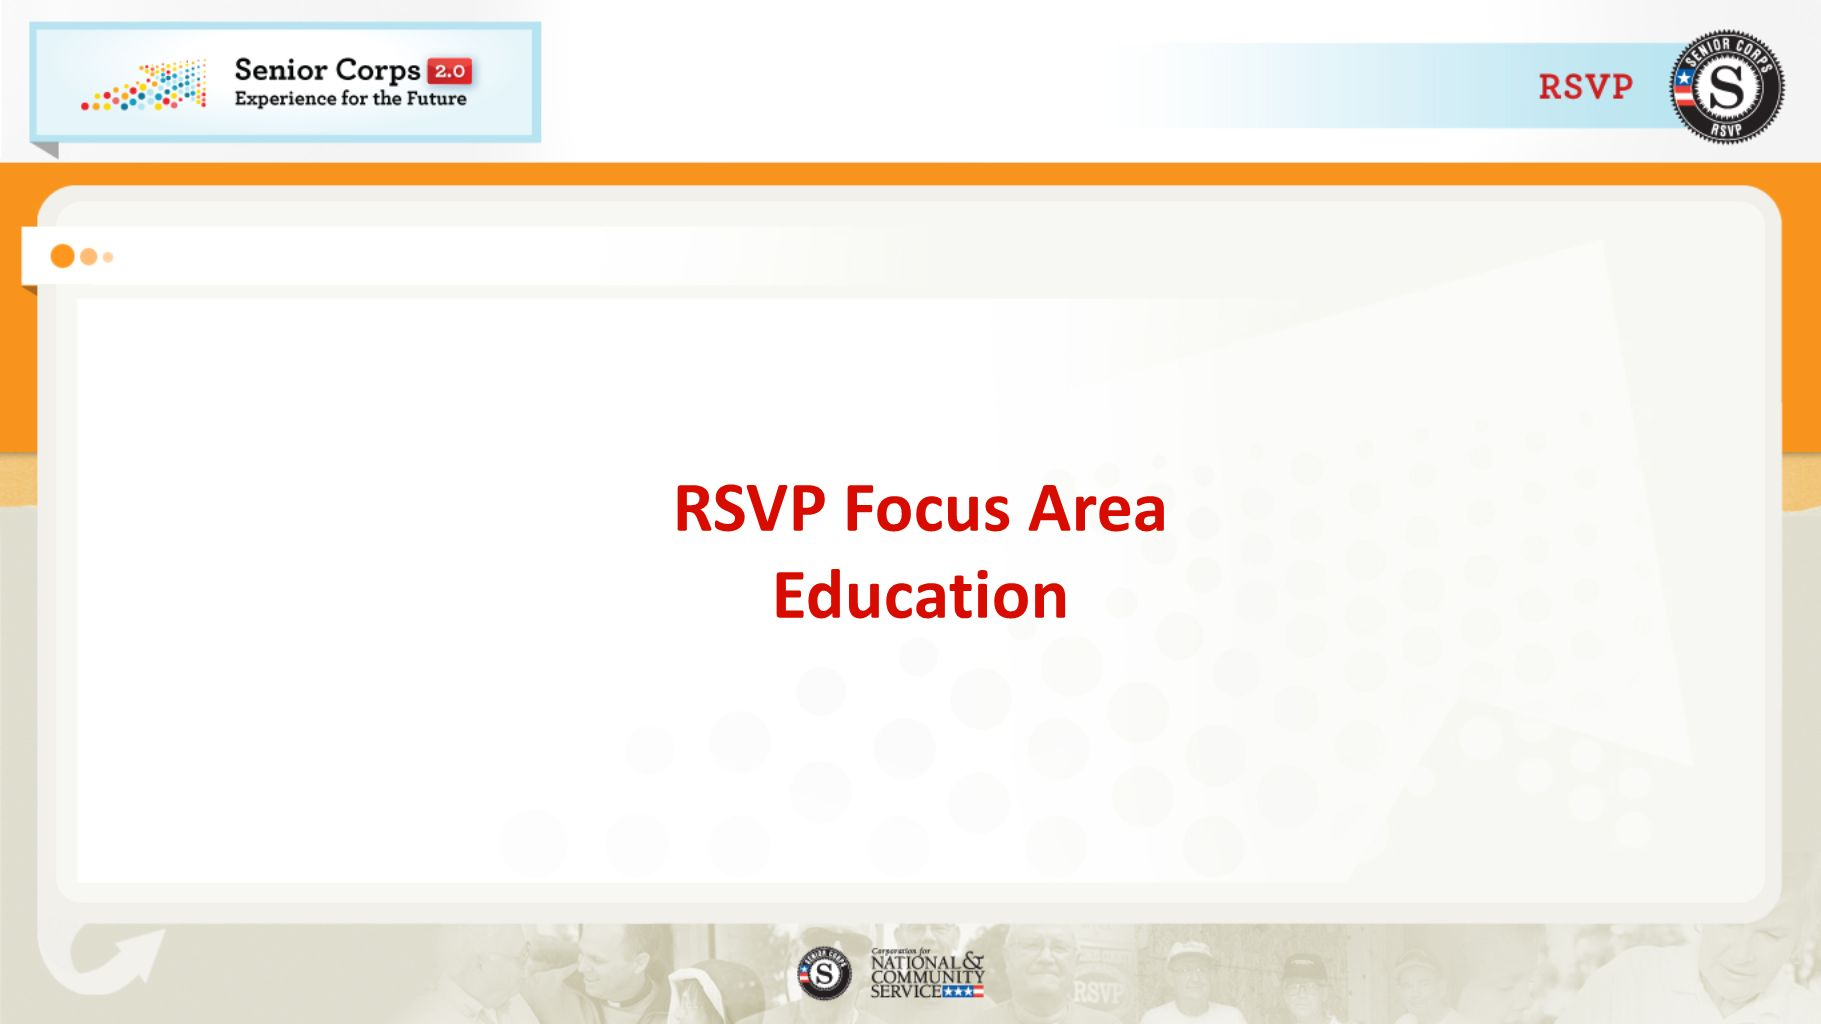 RSVP Focus Area Education